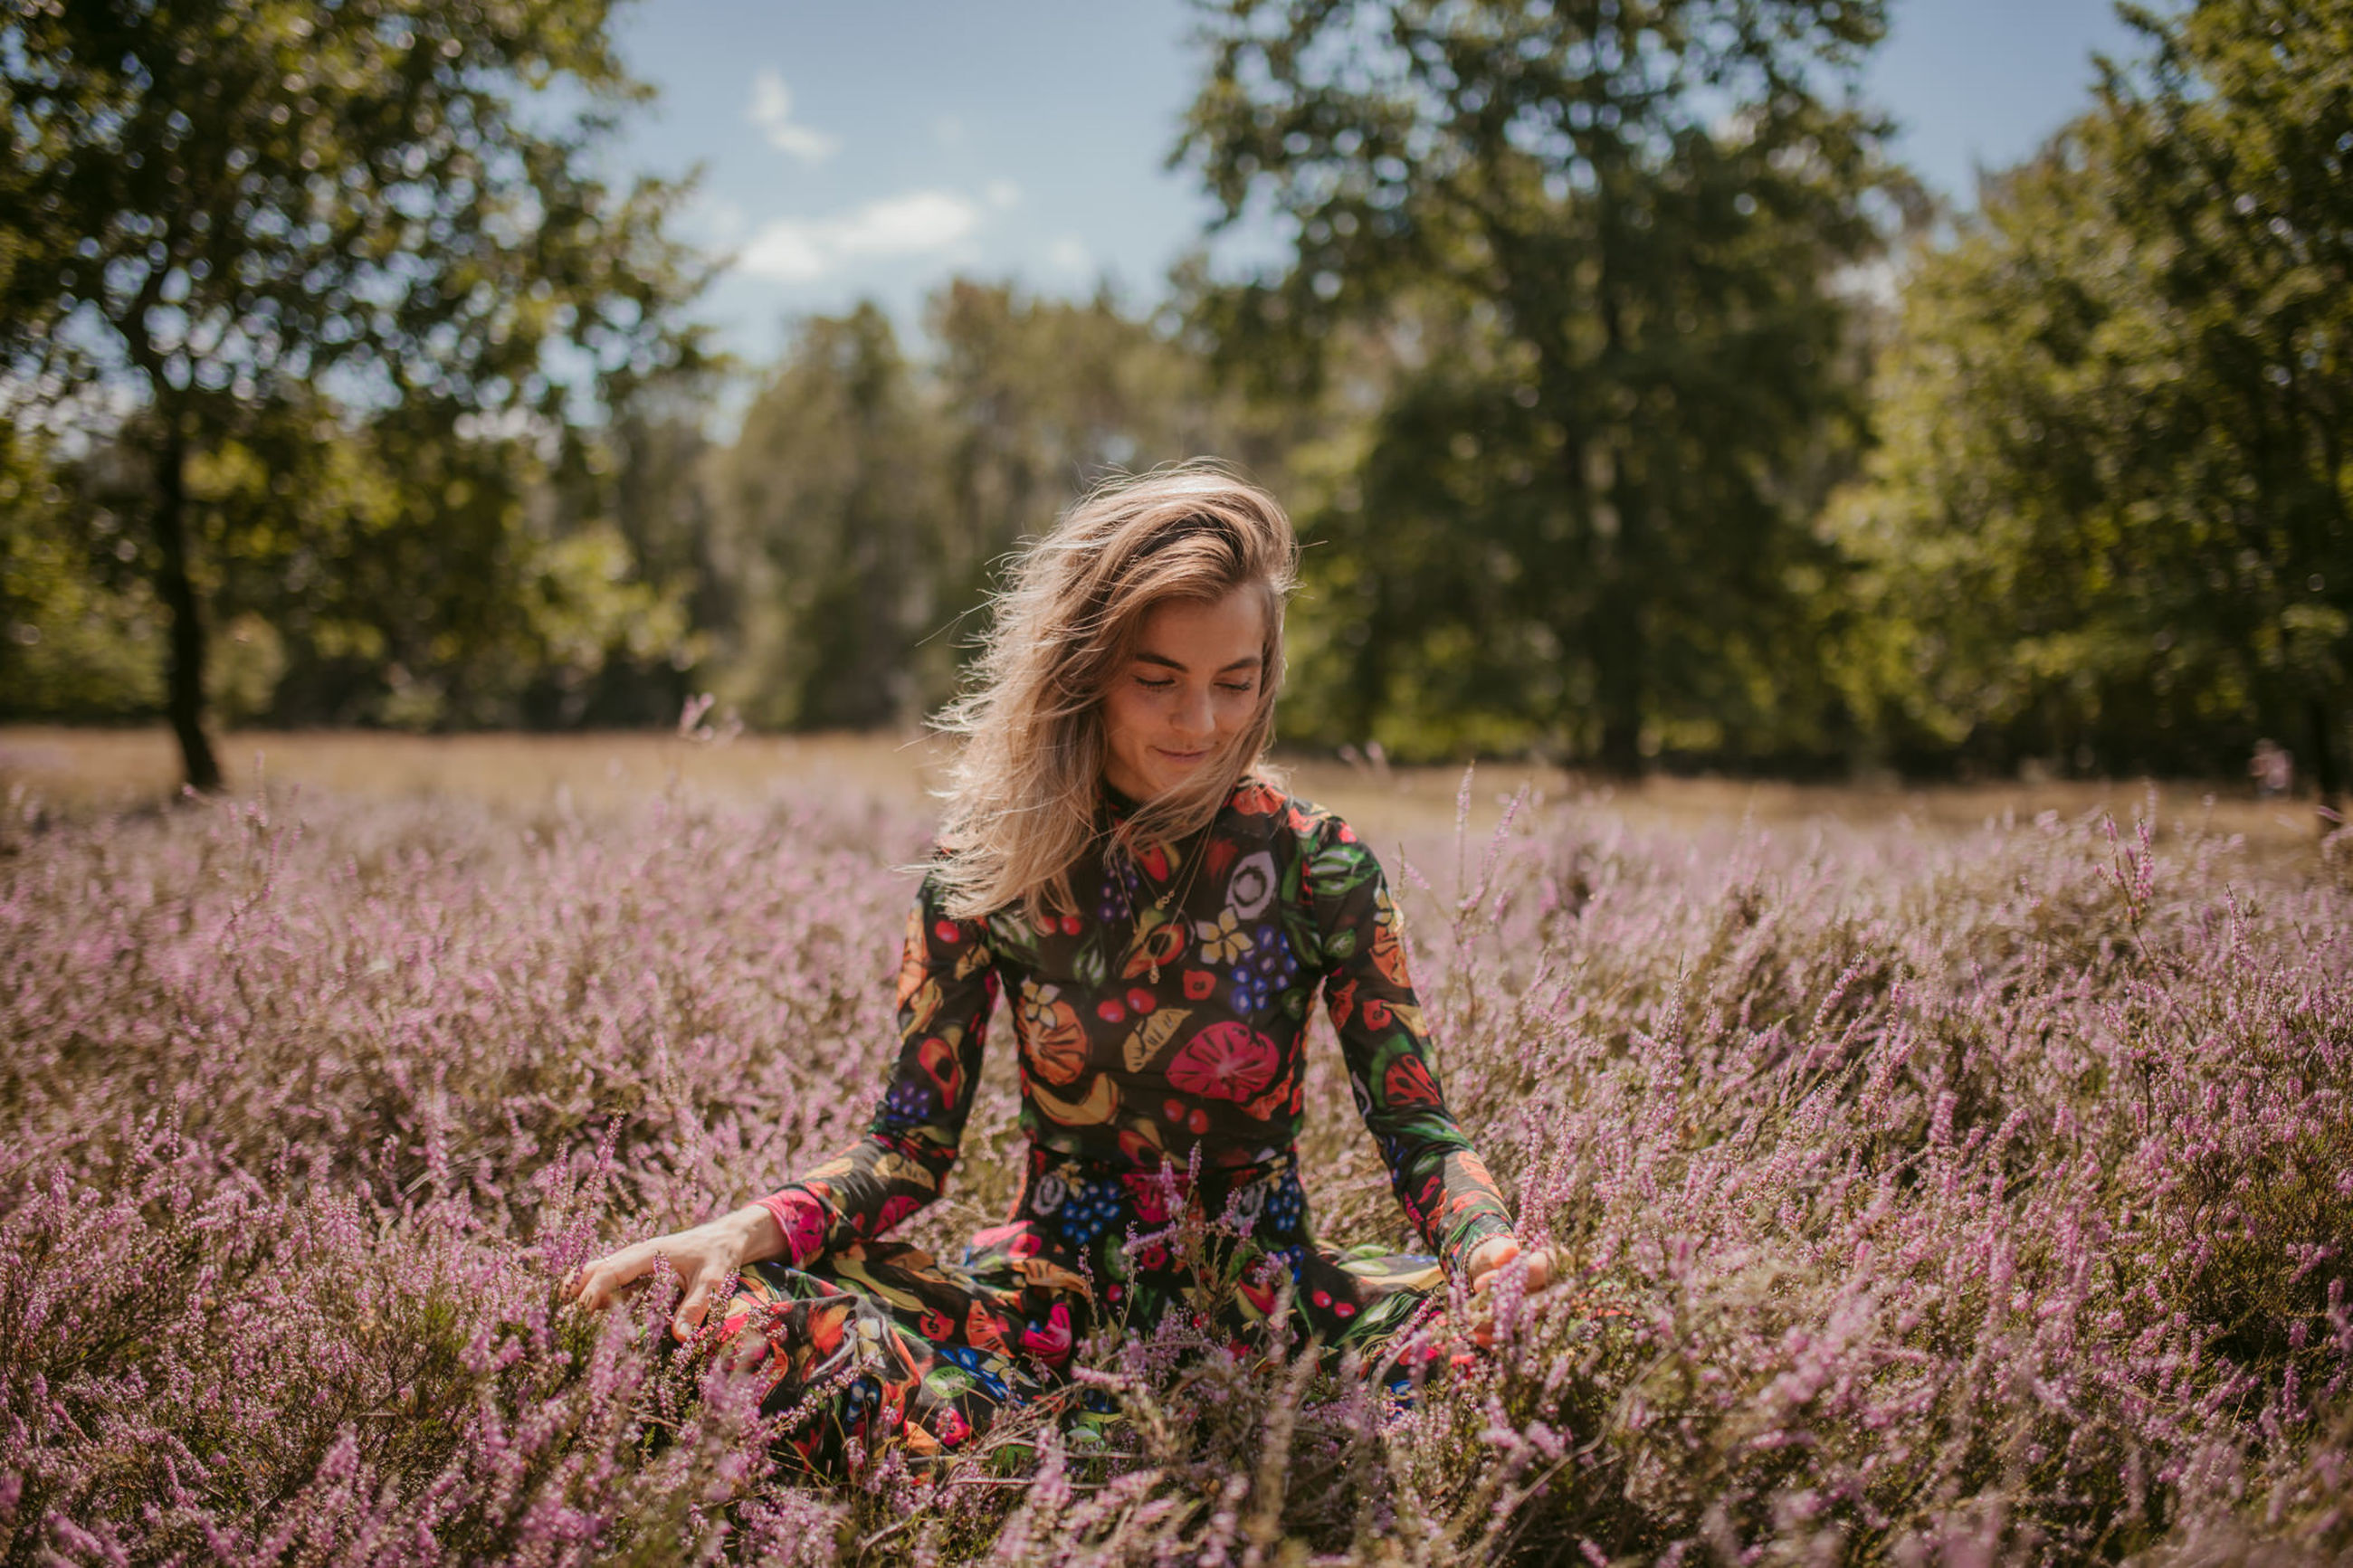 plant, one person, hair, women, real people, growth, leisure activity, tree, nature, lifestyles, blond hair, front view, land, hairstyle, field, day, young adult, casual clothing, flowering plant, beautiful woman, outdoors